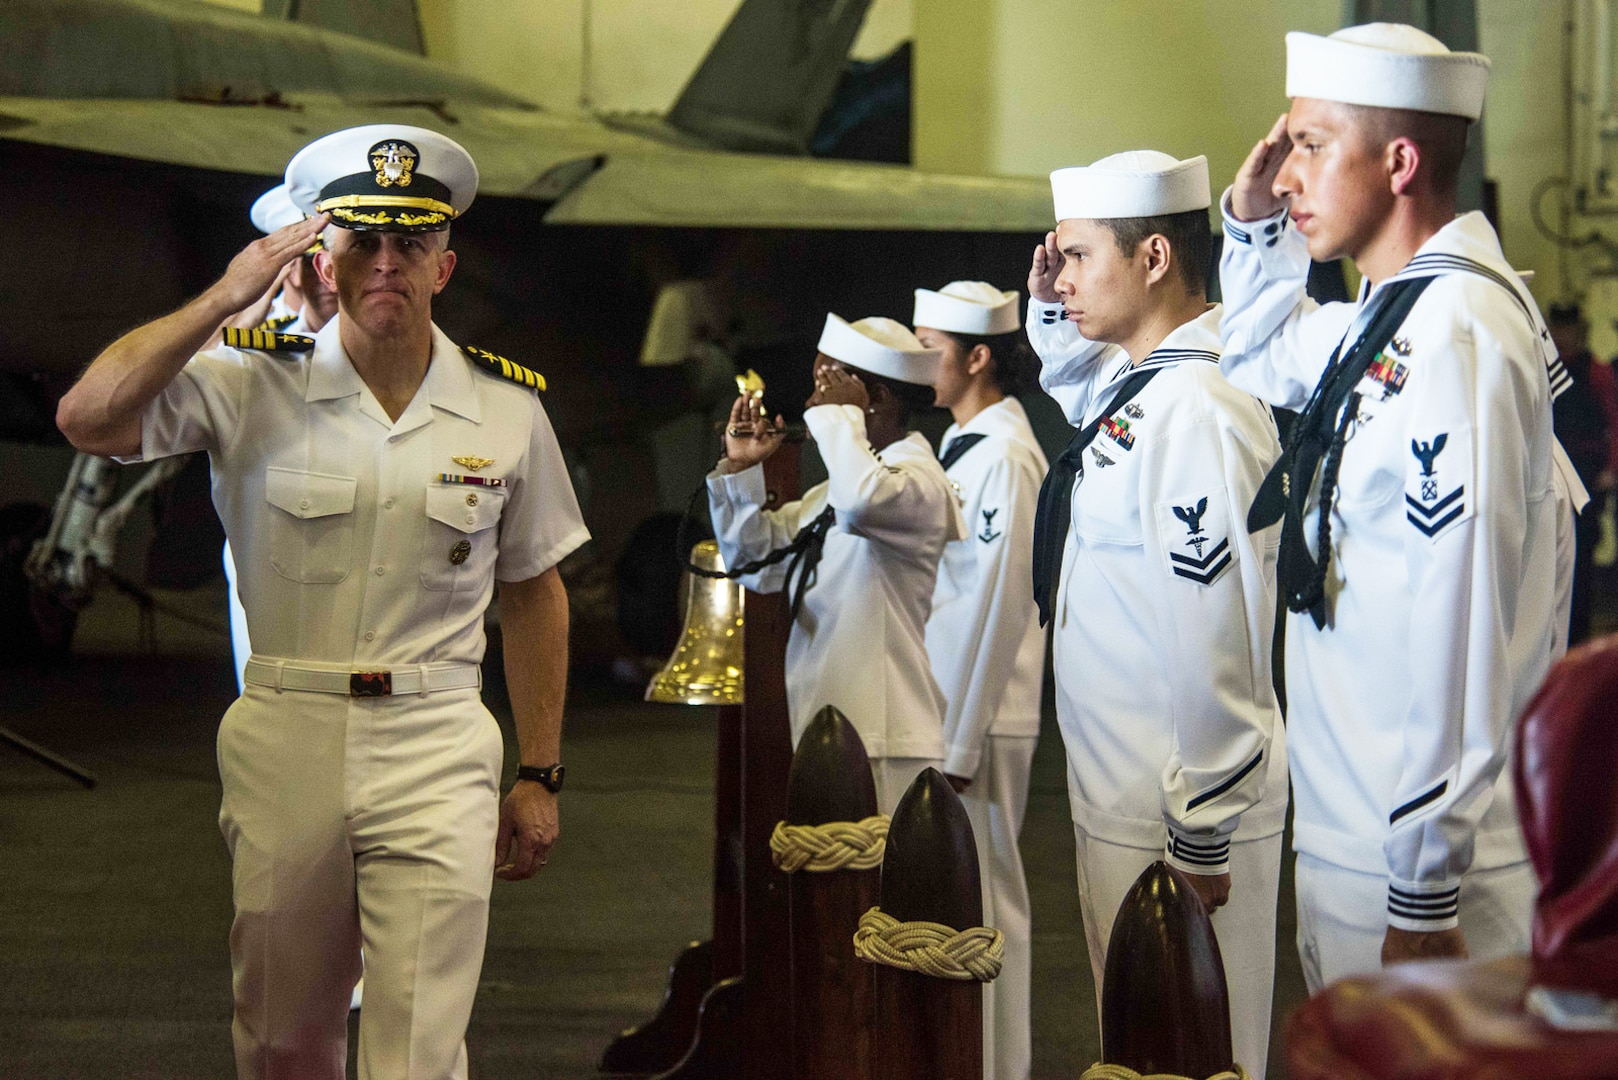 USS Ronald Reagan welcomes new commanding officer in at-sea ceremony